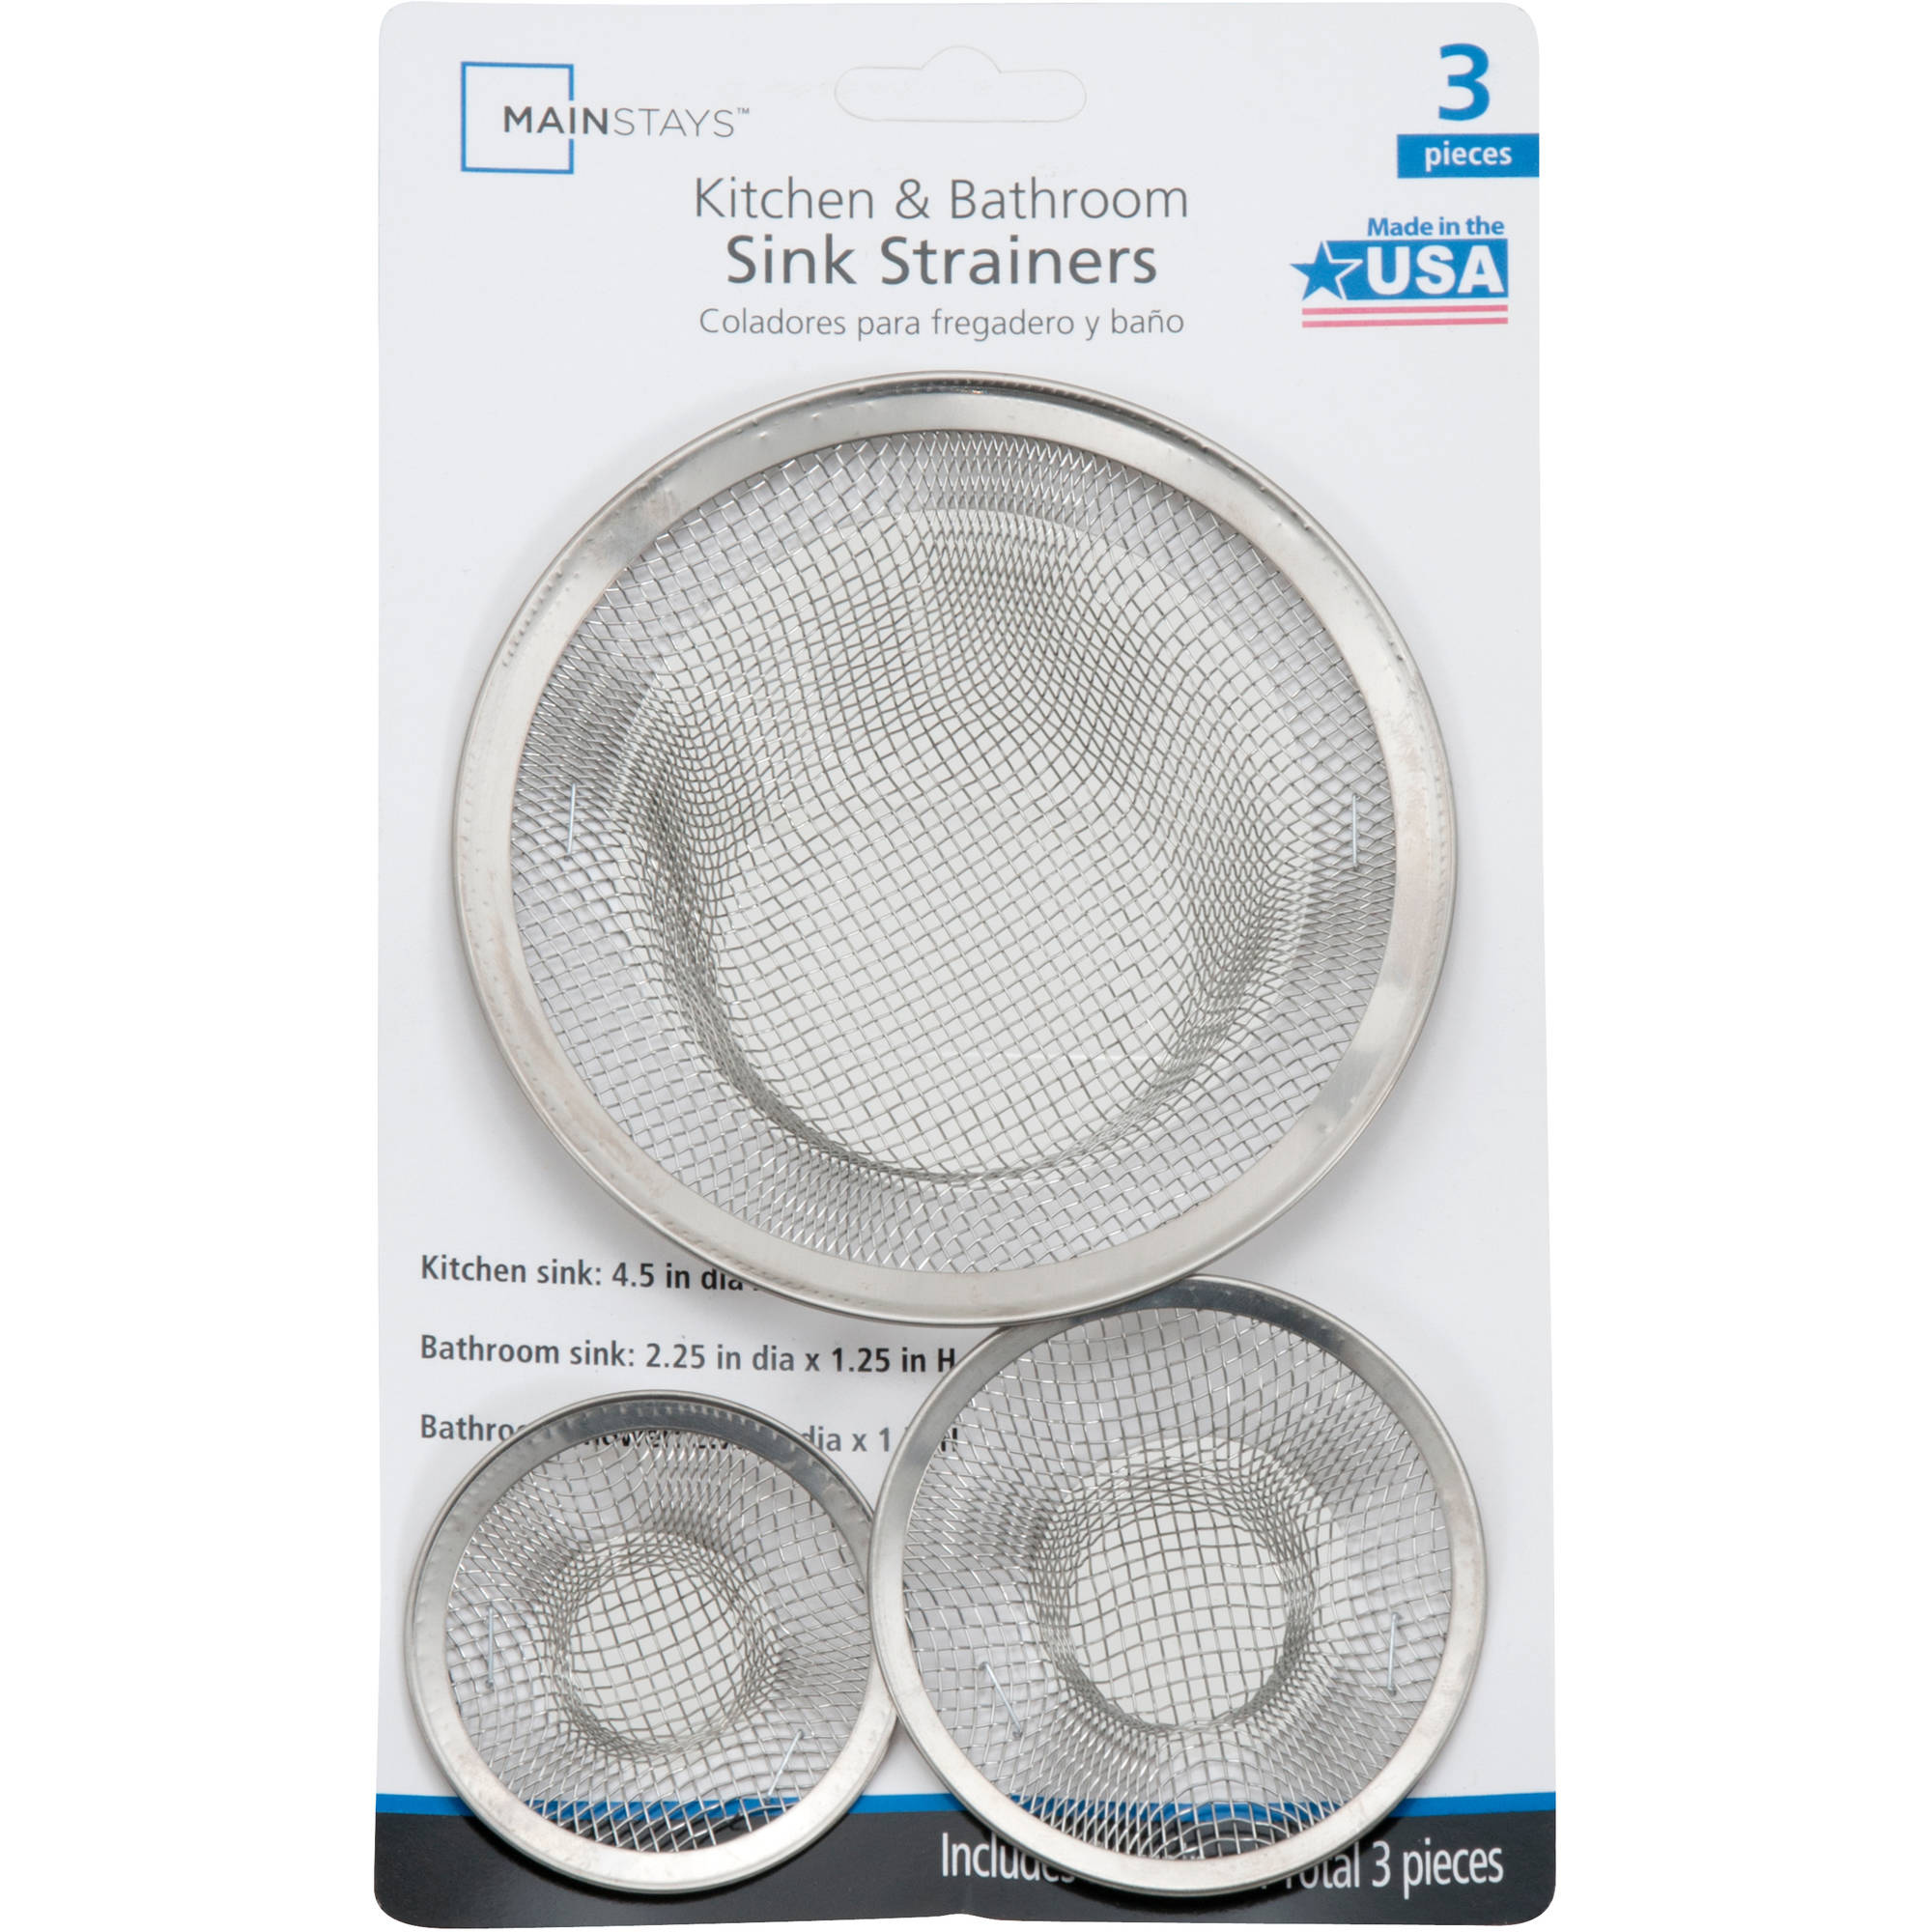 Mainstays Ms 3pc Kitchen Sink & Shower Strainers